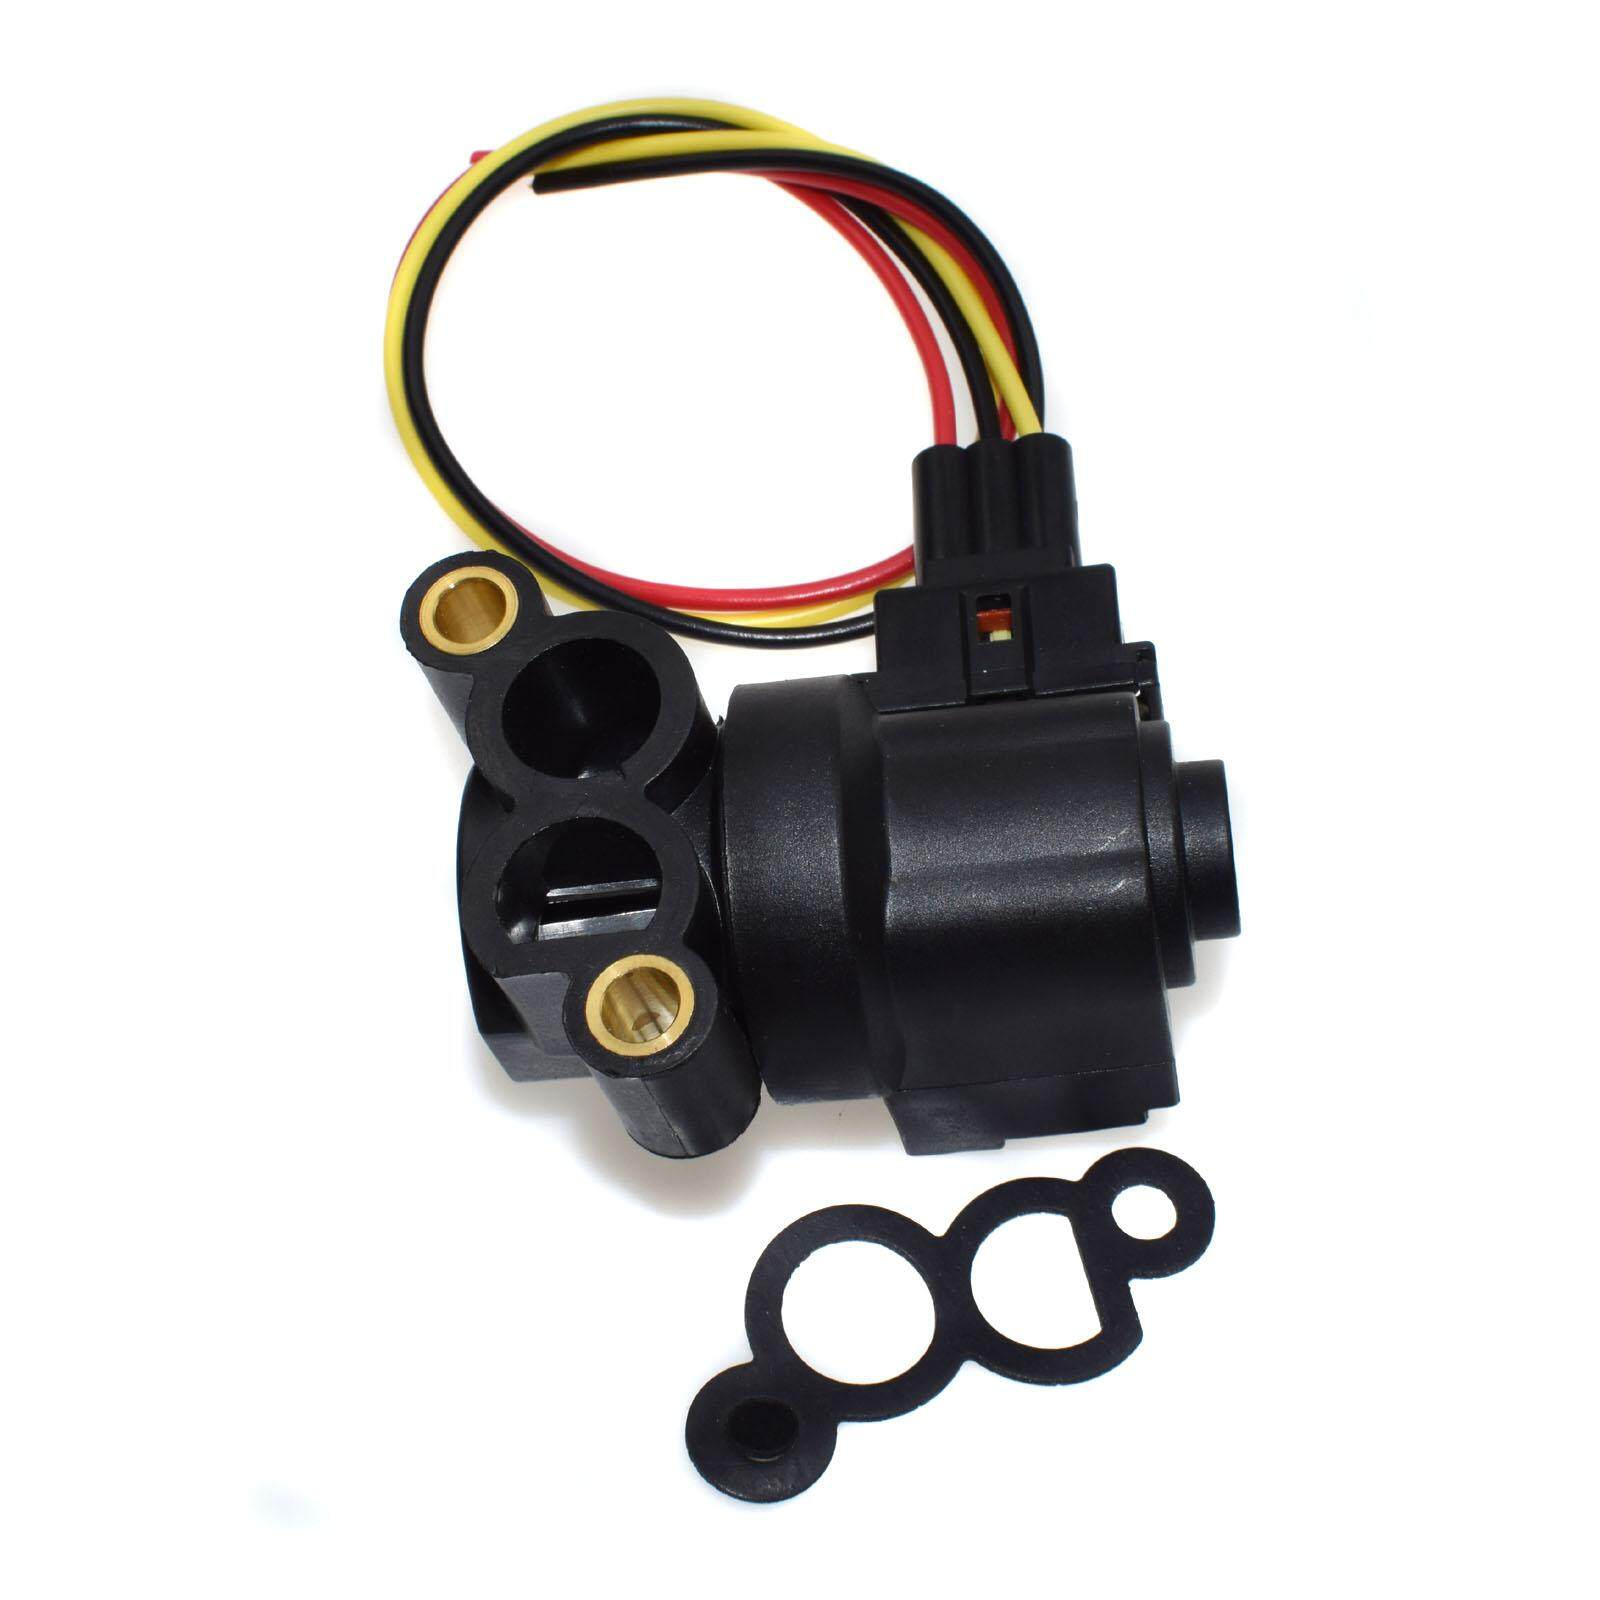 New Idle Air Control Valve Control 12482707 W// Pigtail Harness For GMC Pontiac